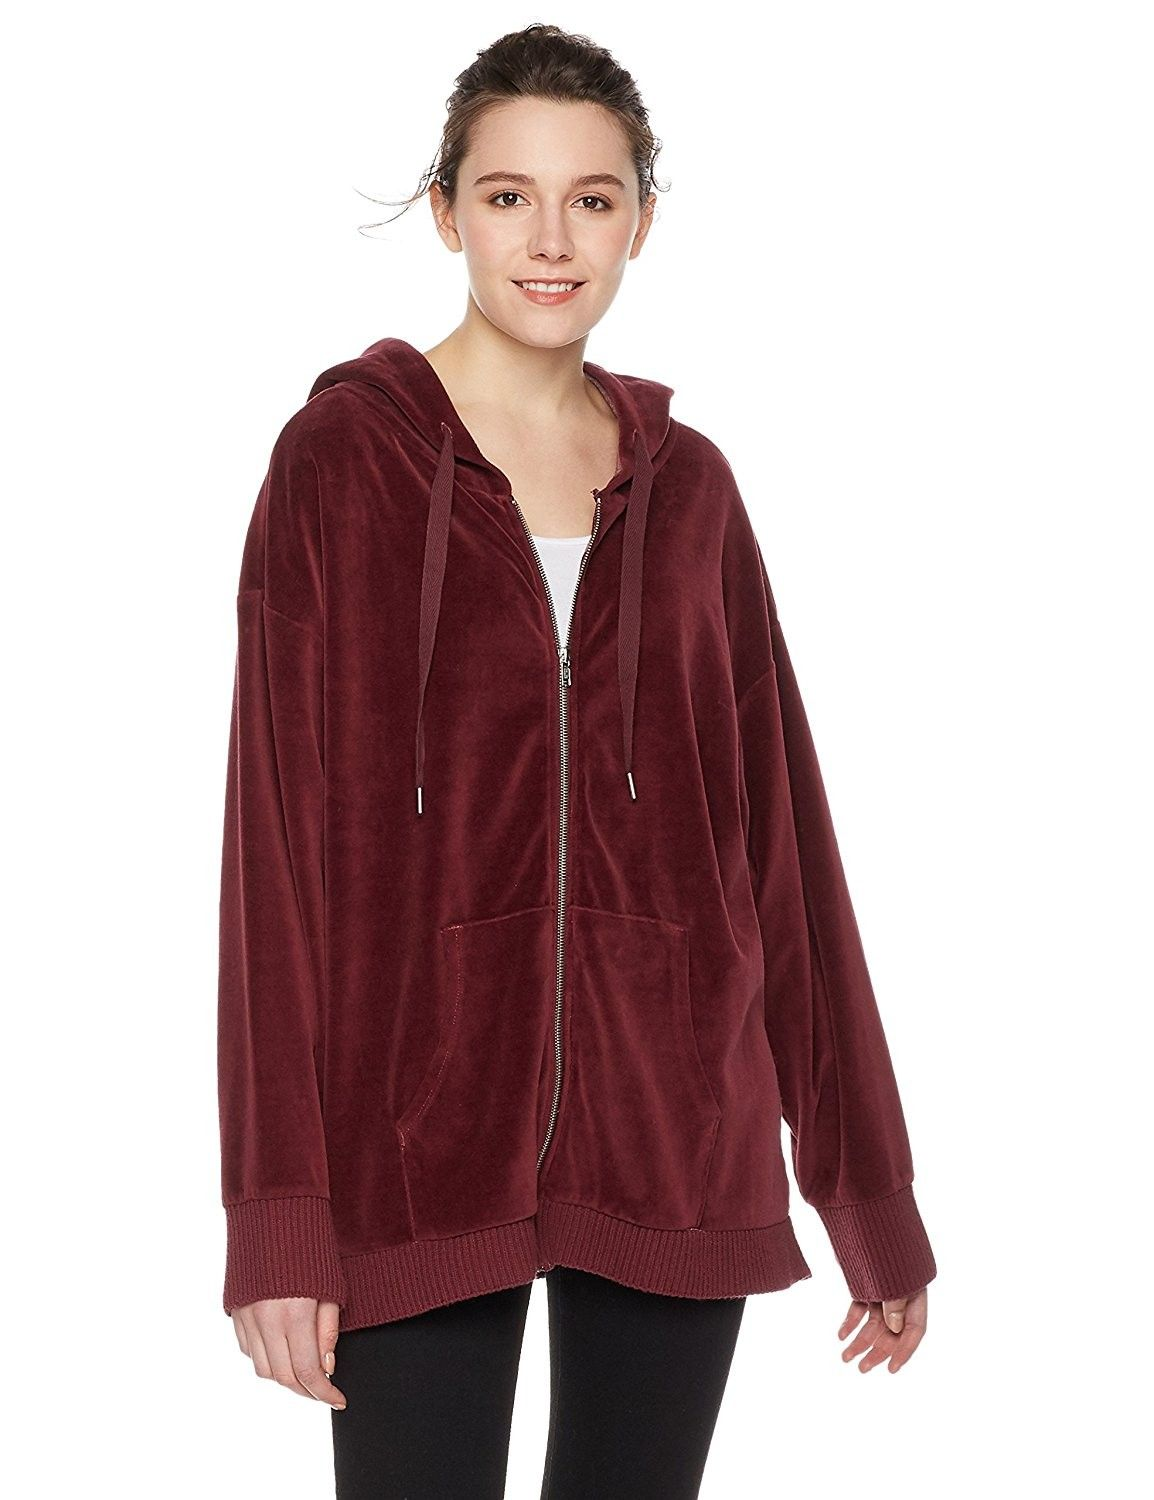 Women S Washed Oversized Velour Zip Up Hoodie Port Royale Ca186zid624 Sweatshirt Fashion Online Womens Clothing Clothes For Women